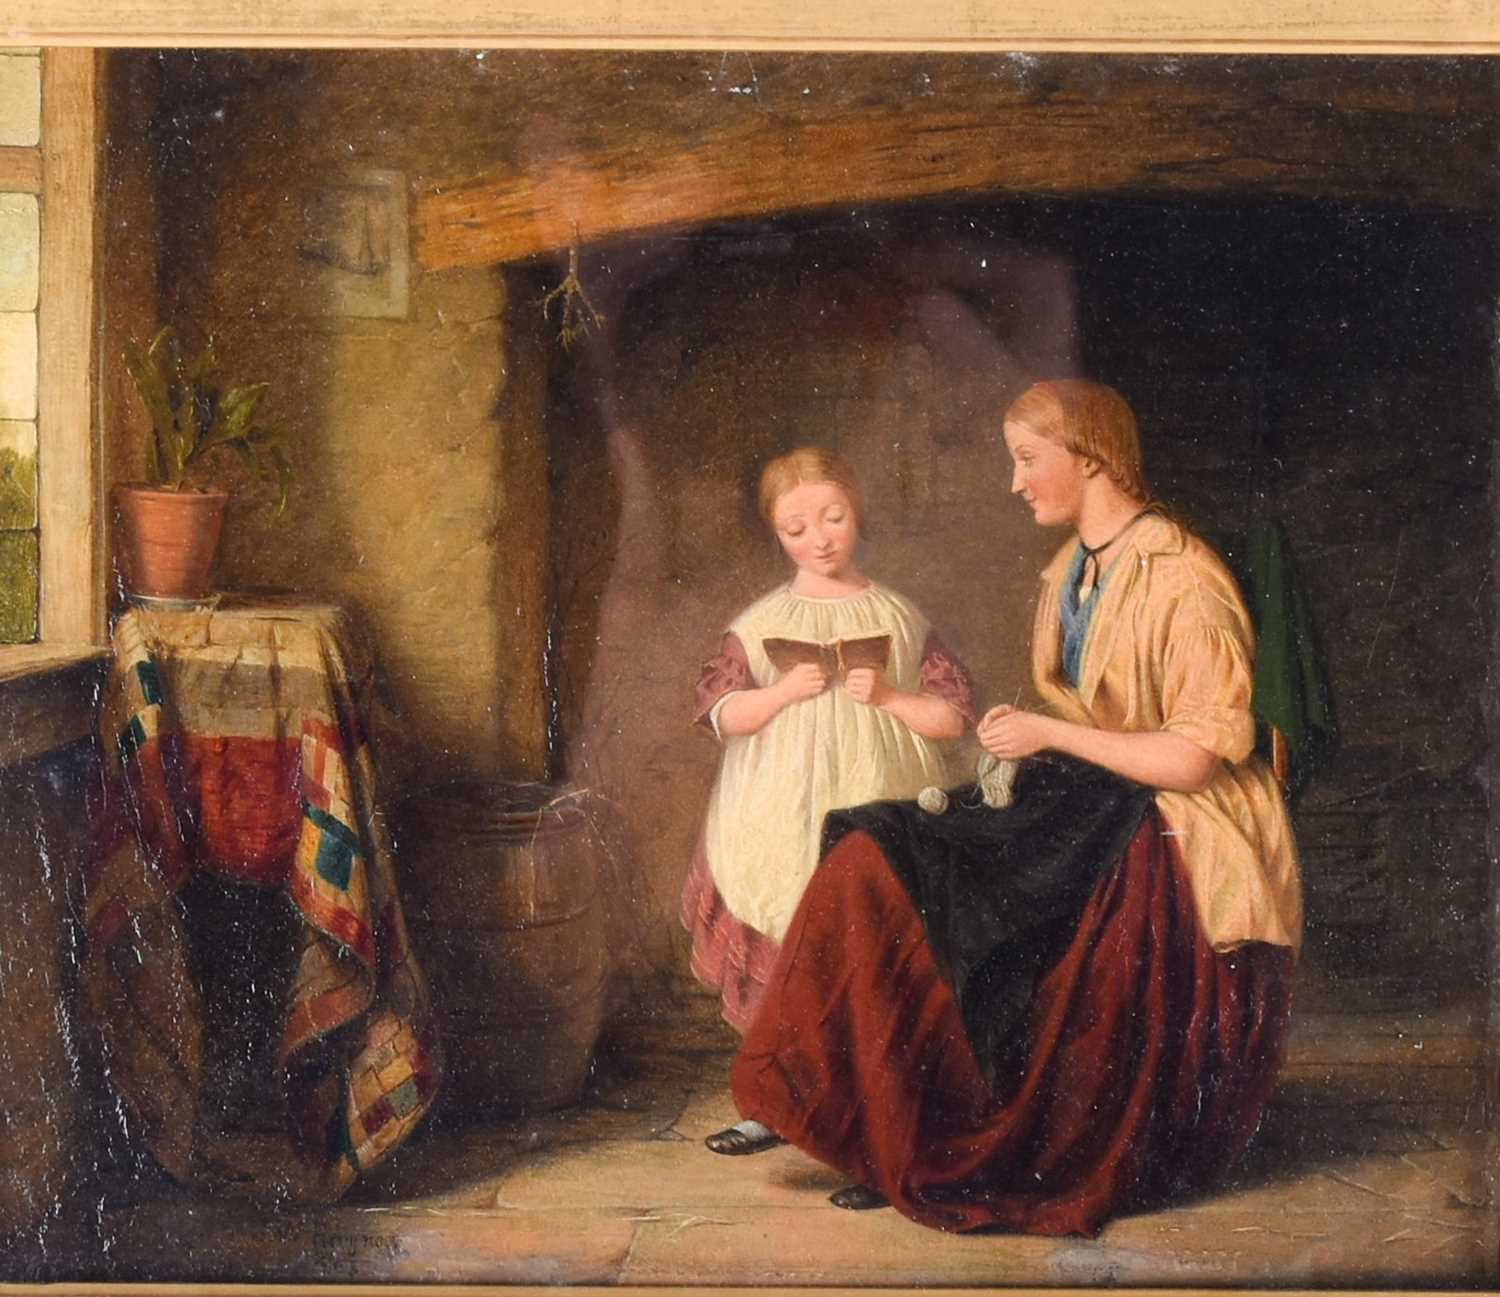 John William Haynes (fl. 1852-1882) British, 'The Task', depicting a young child reading from a book - Image 4 of 4